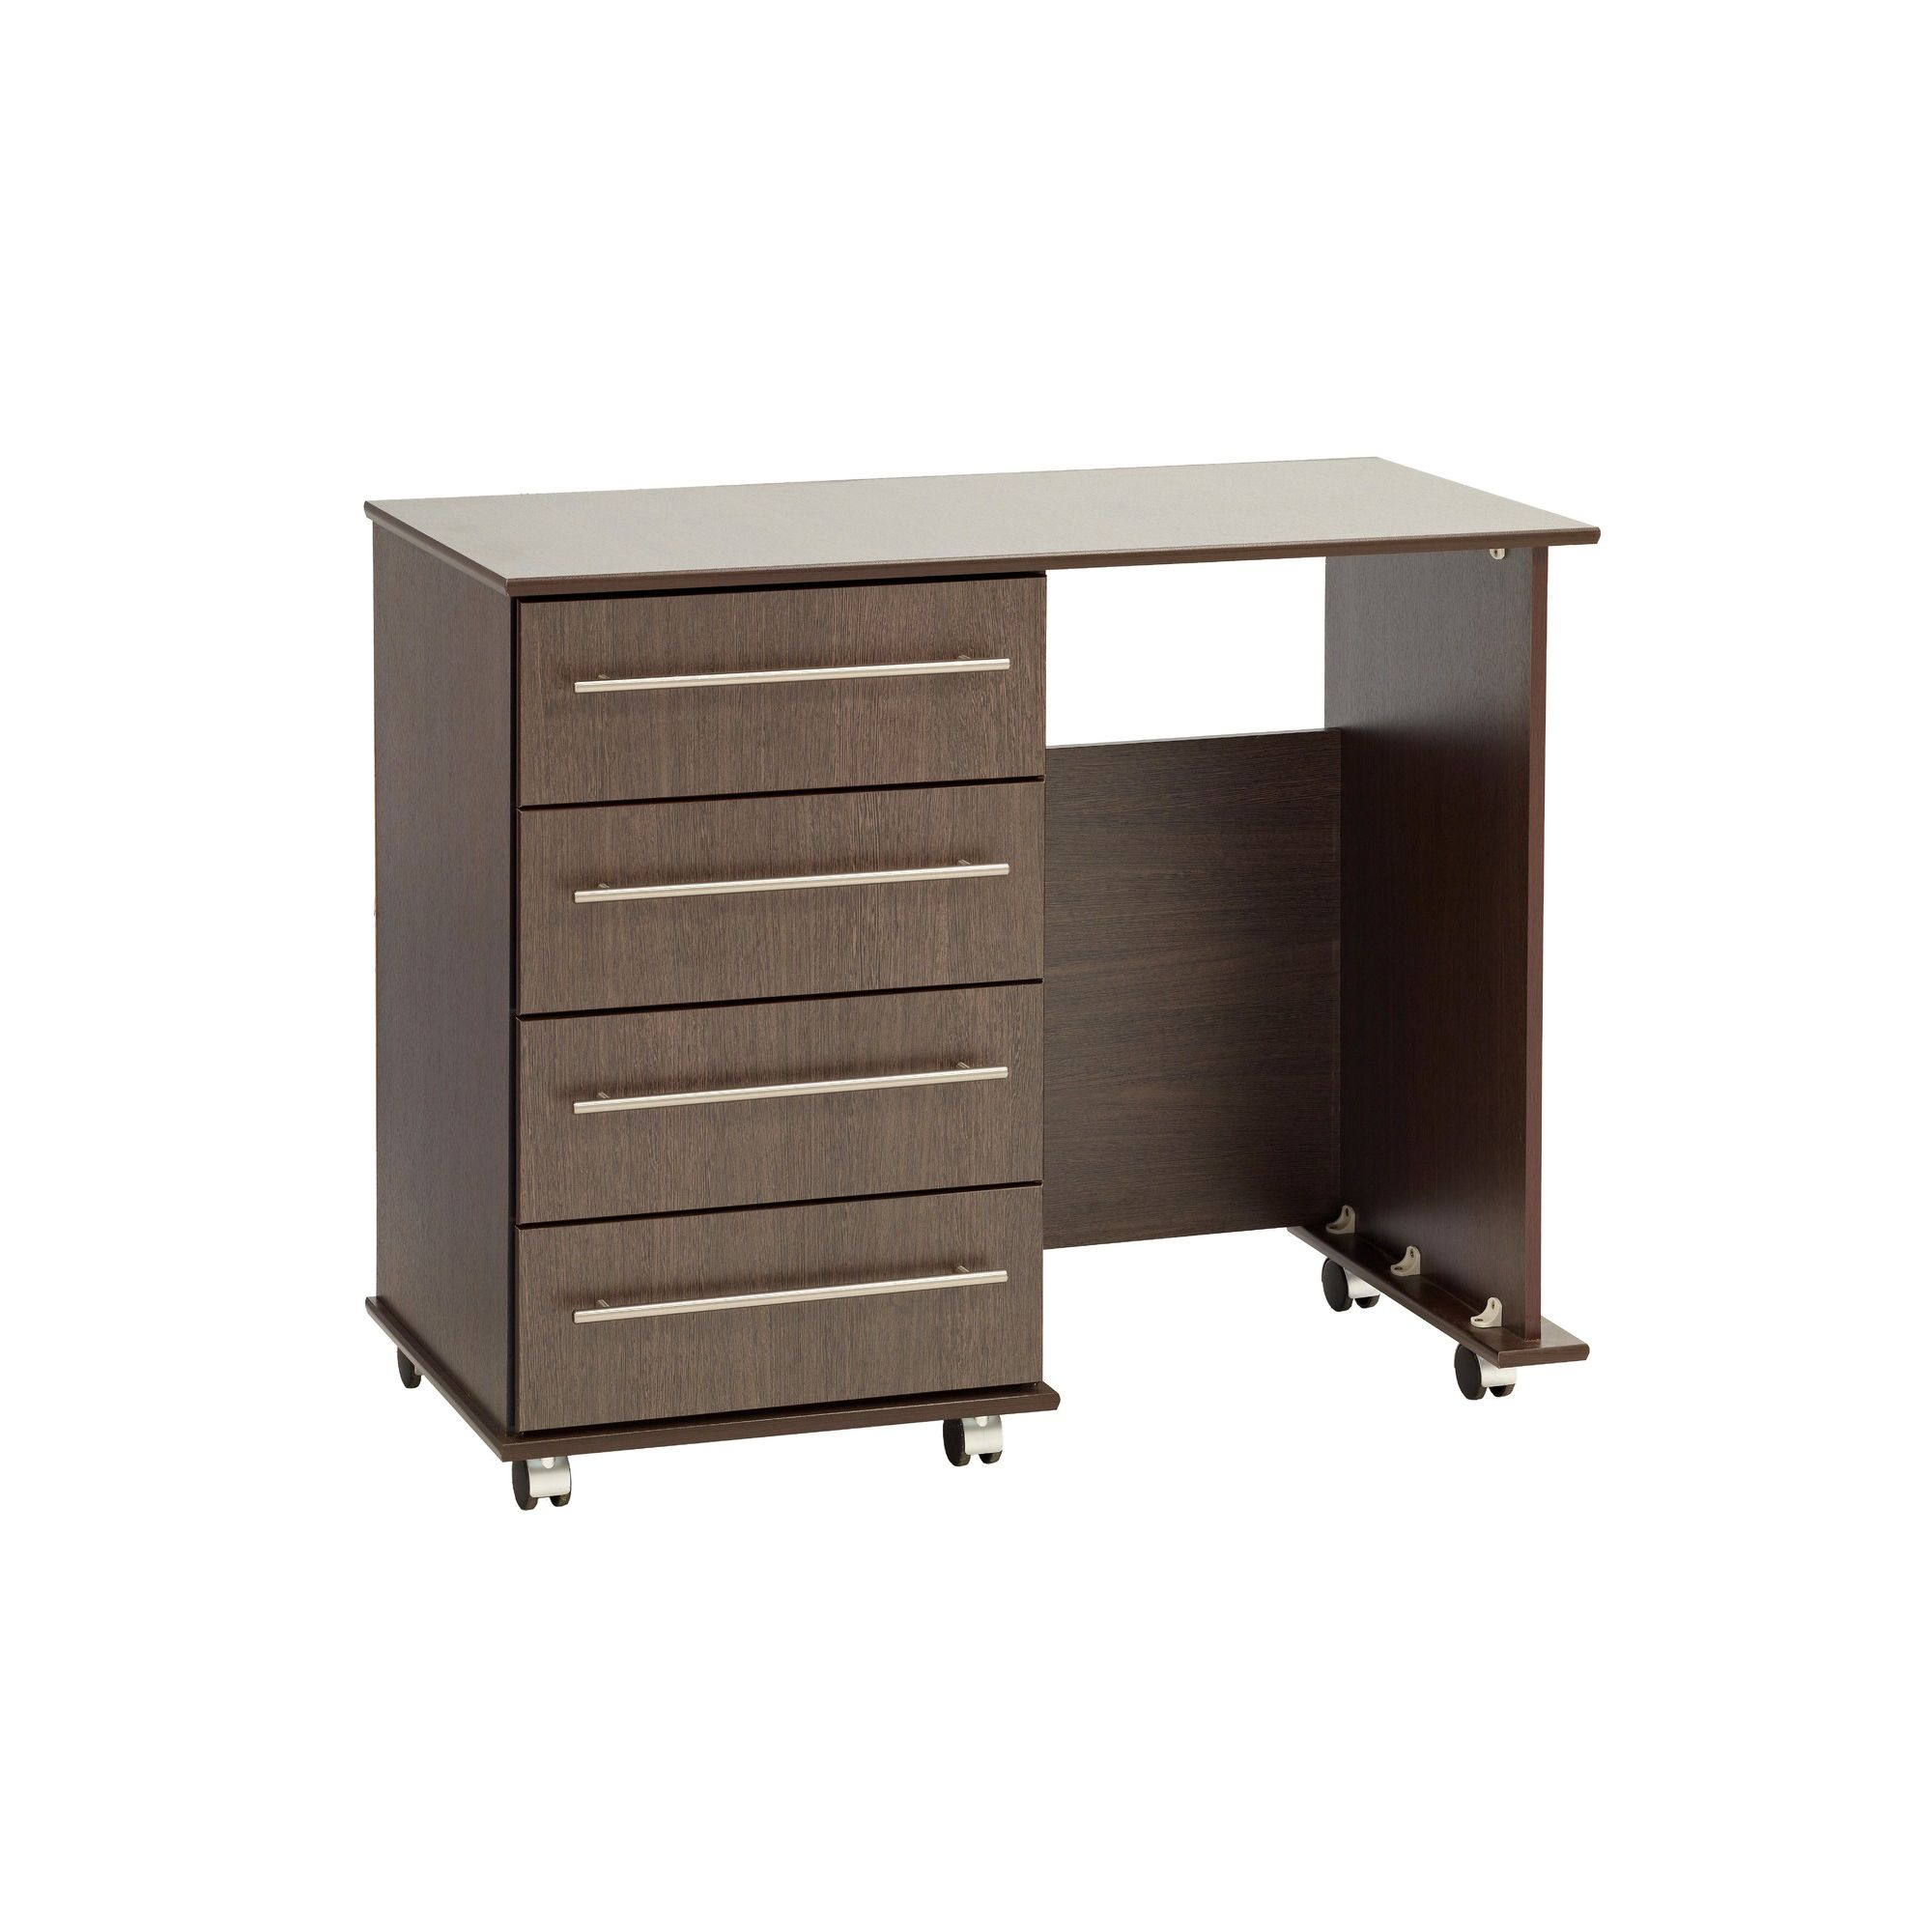 Ideal Furniture New York Single Dressing Table - Beech at Tesco Direct